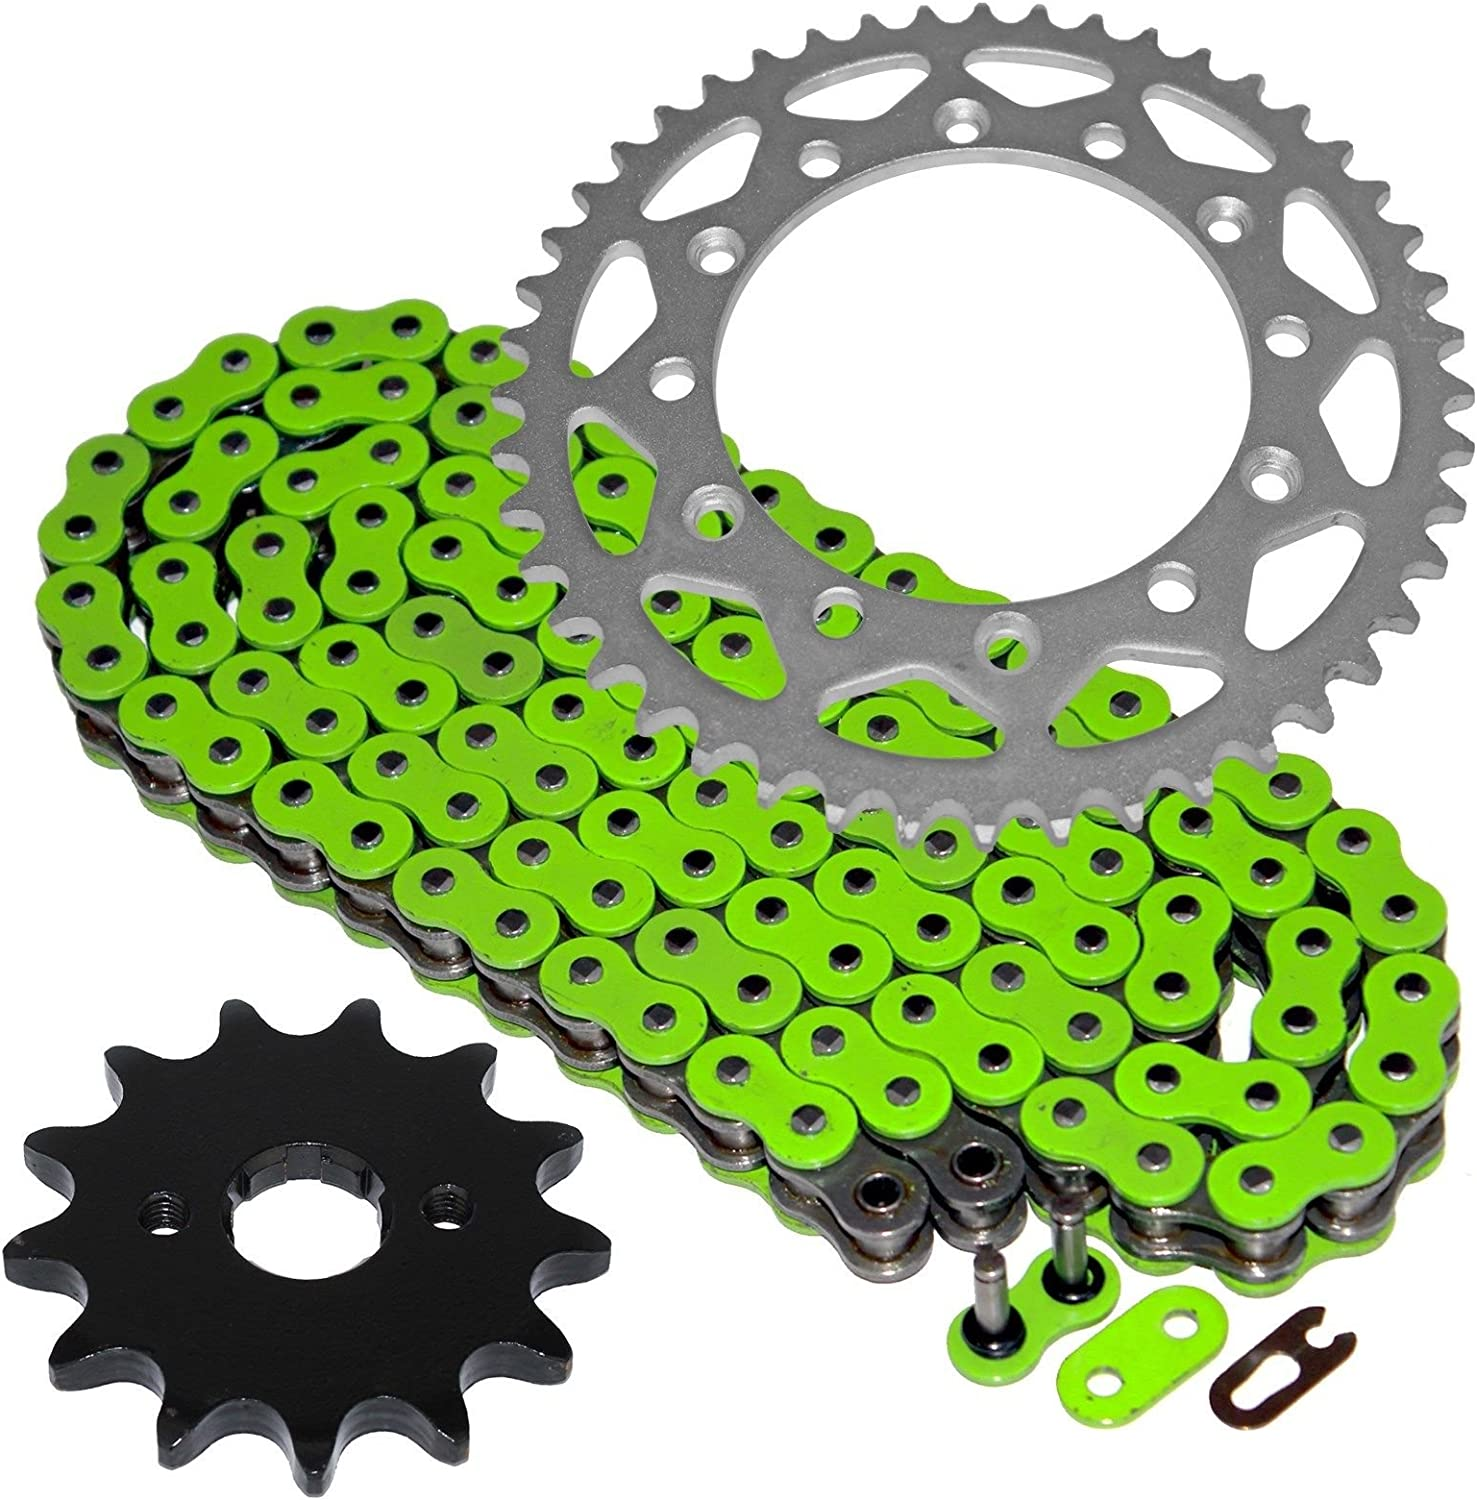 Caltric Green O-Ring Drive Chain W 2021 Sprockets Rear Front Comp Import Kit